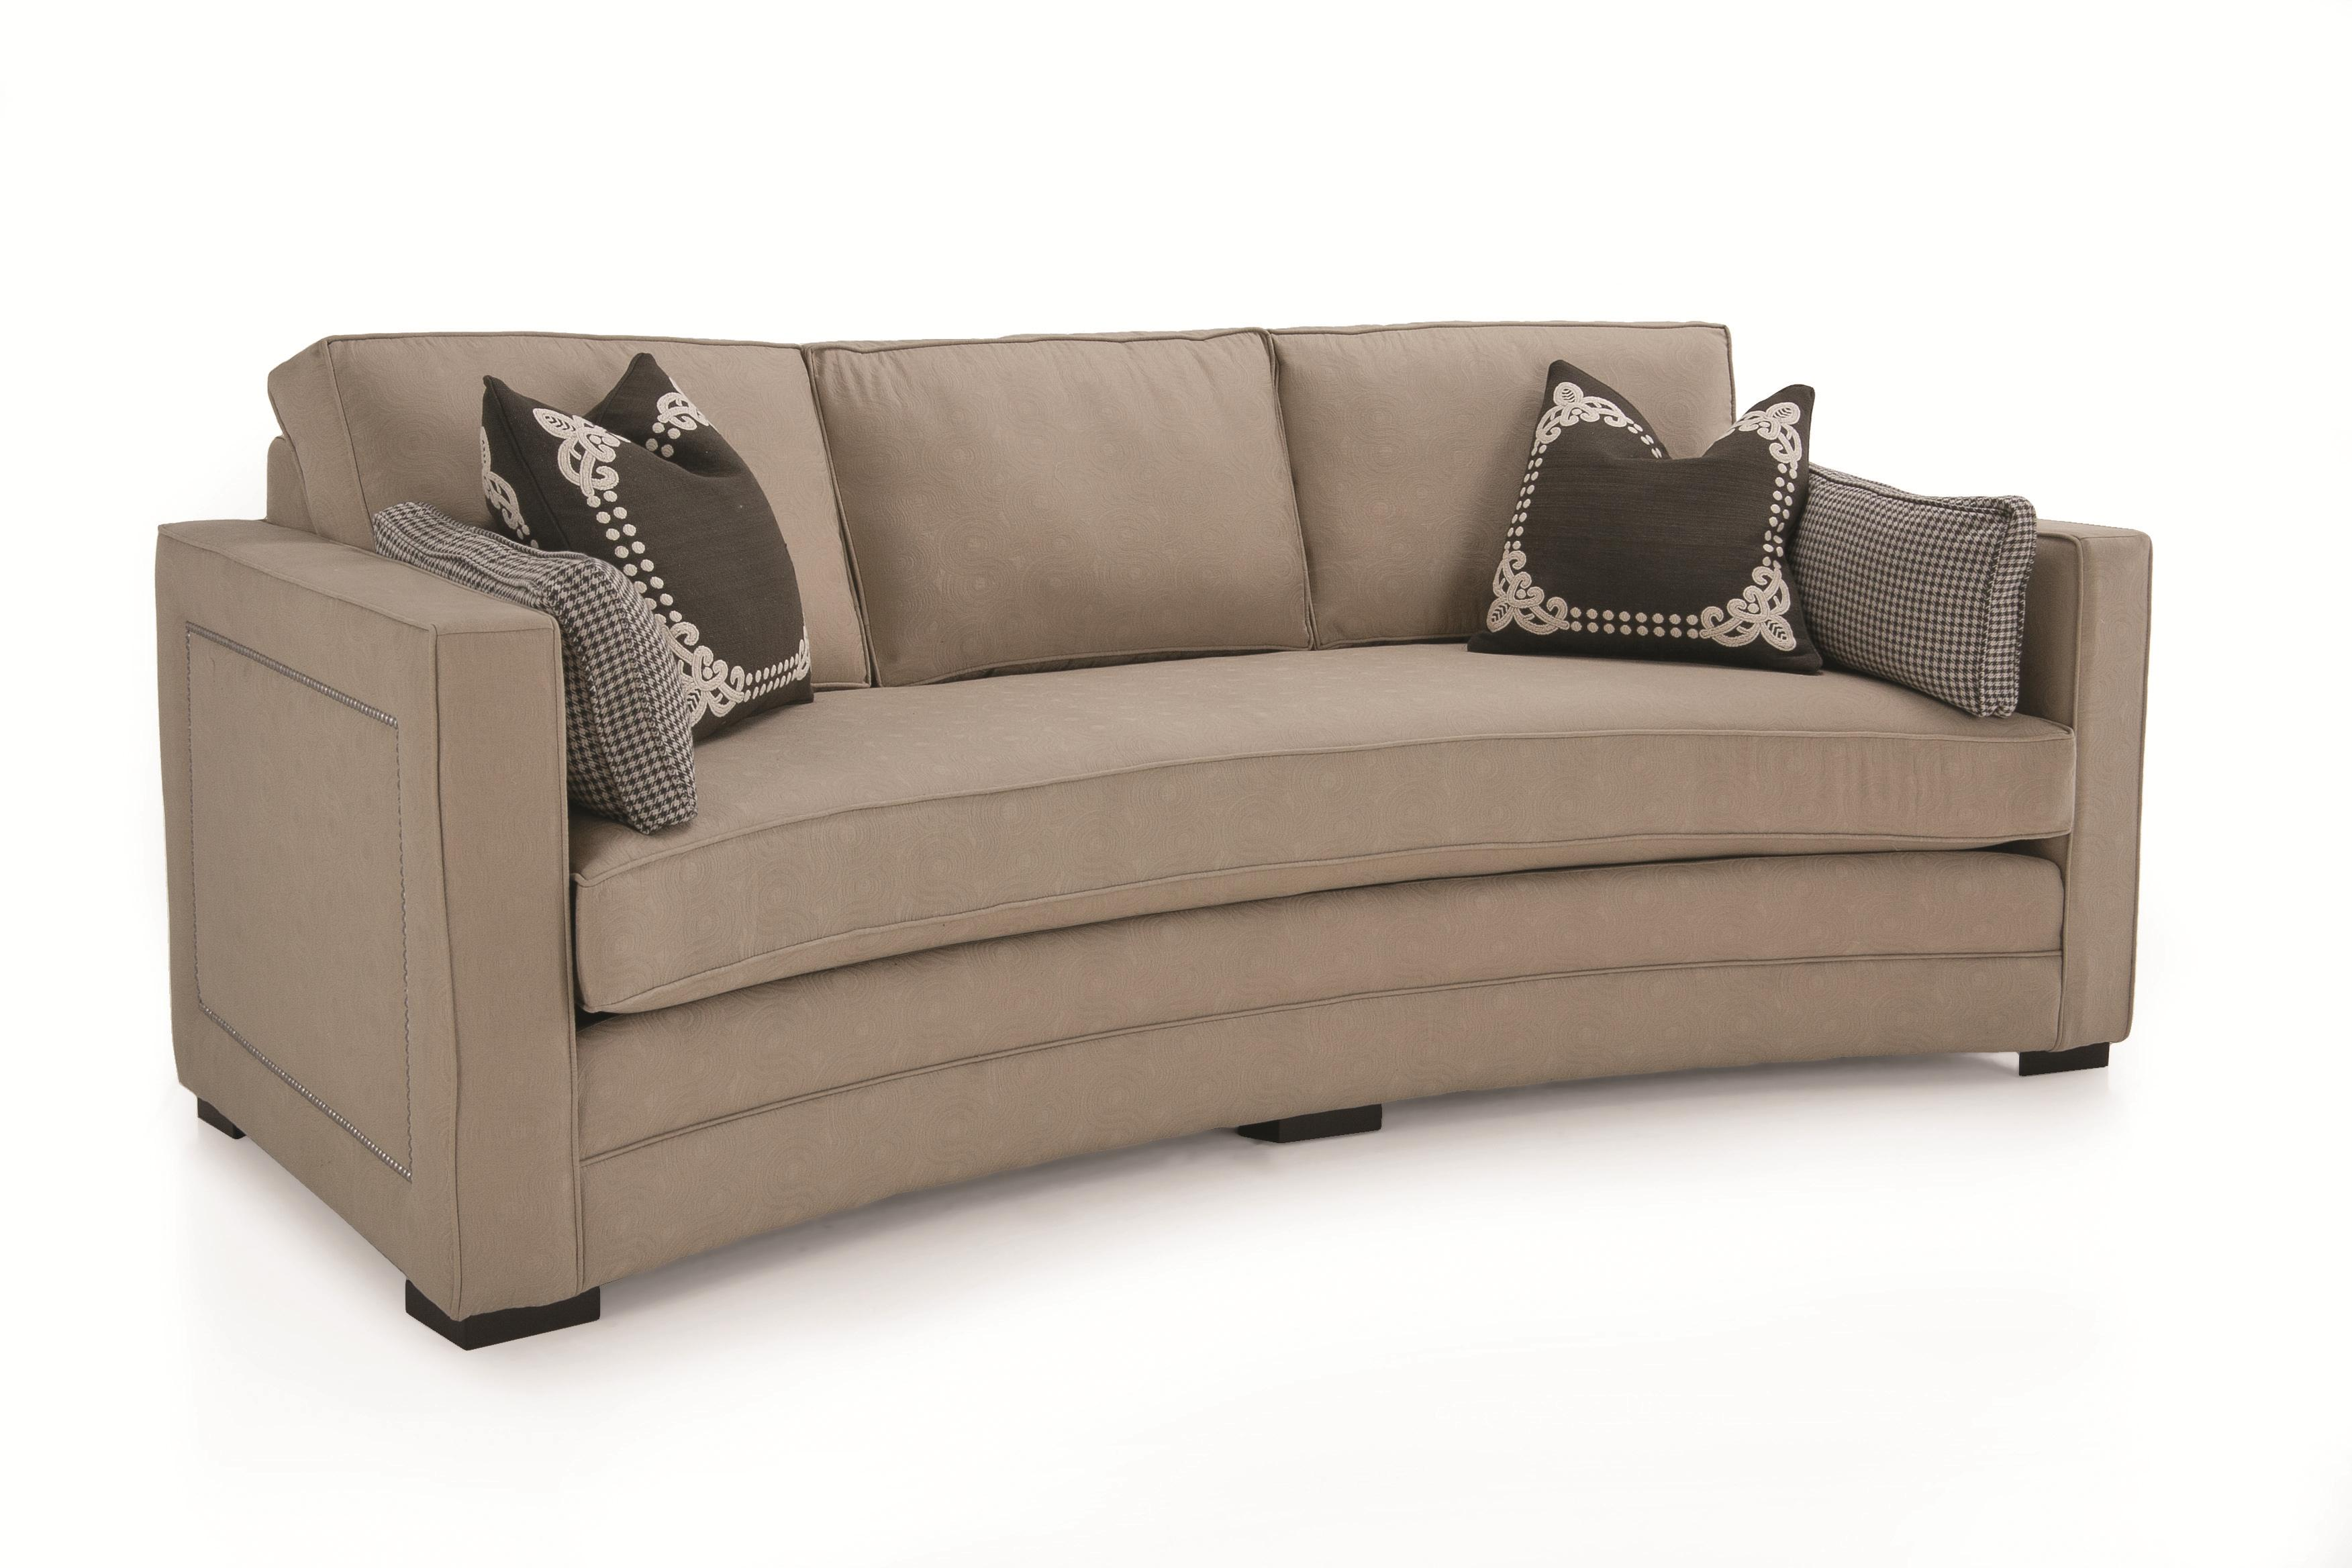 Decor rest limited edition 9015 conversation sofa with for Decor home furniture ltd